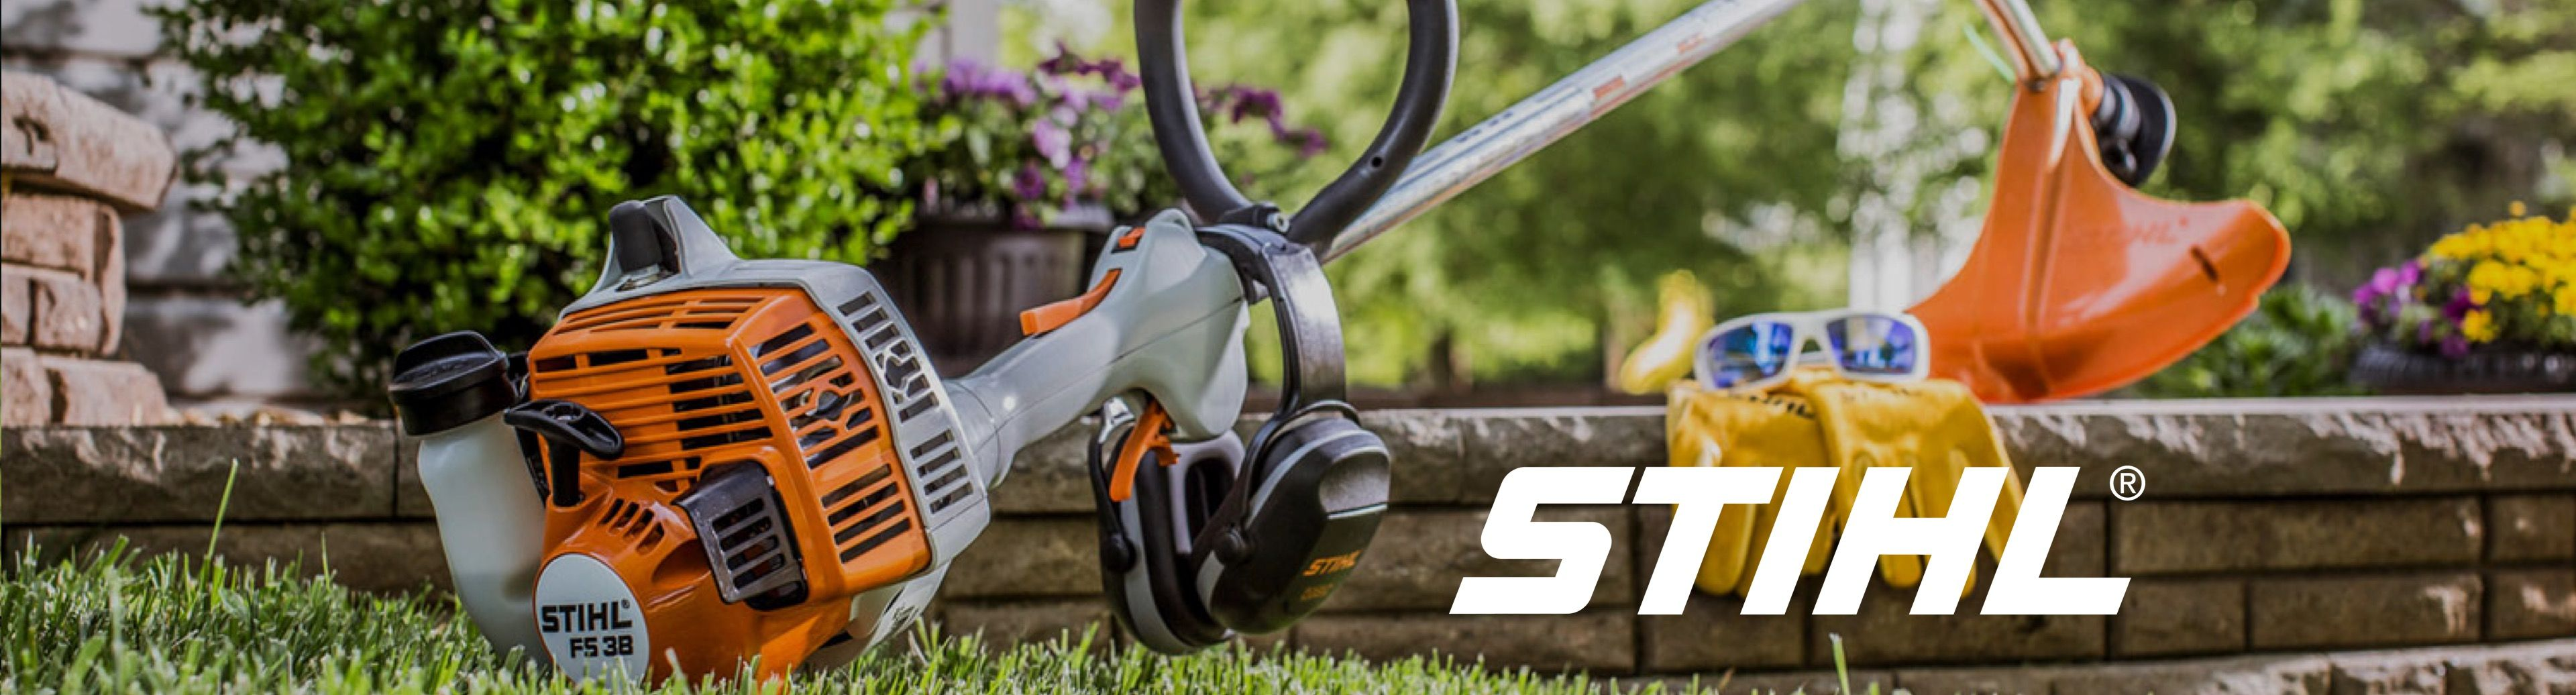 More about Stihl power equipment at Central Center